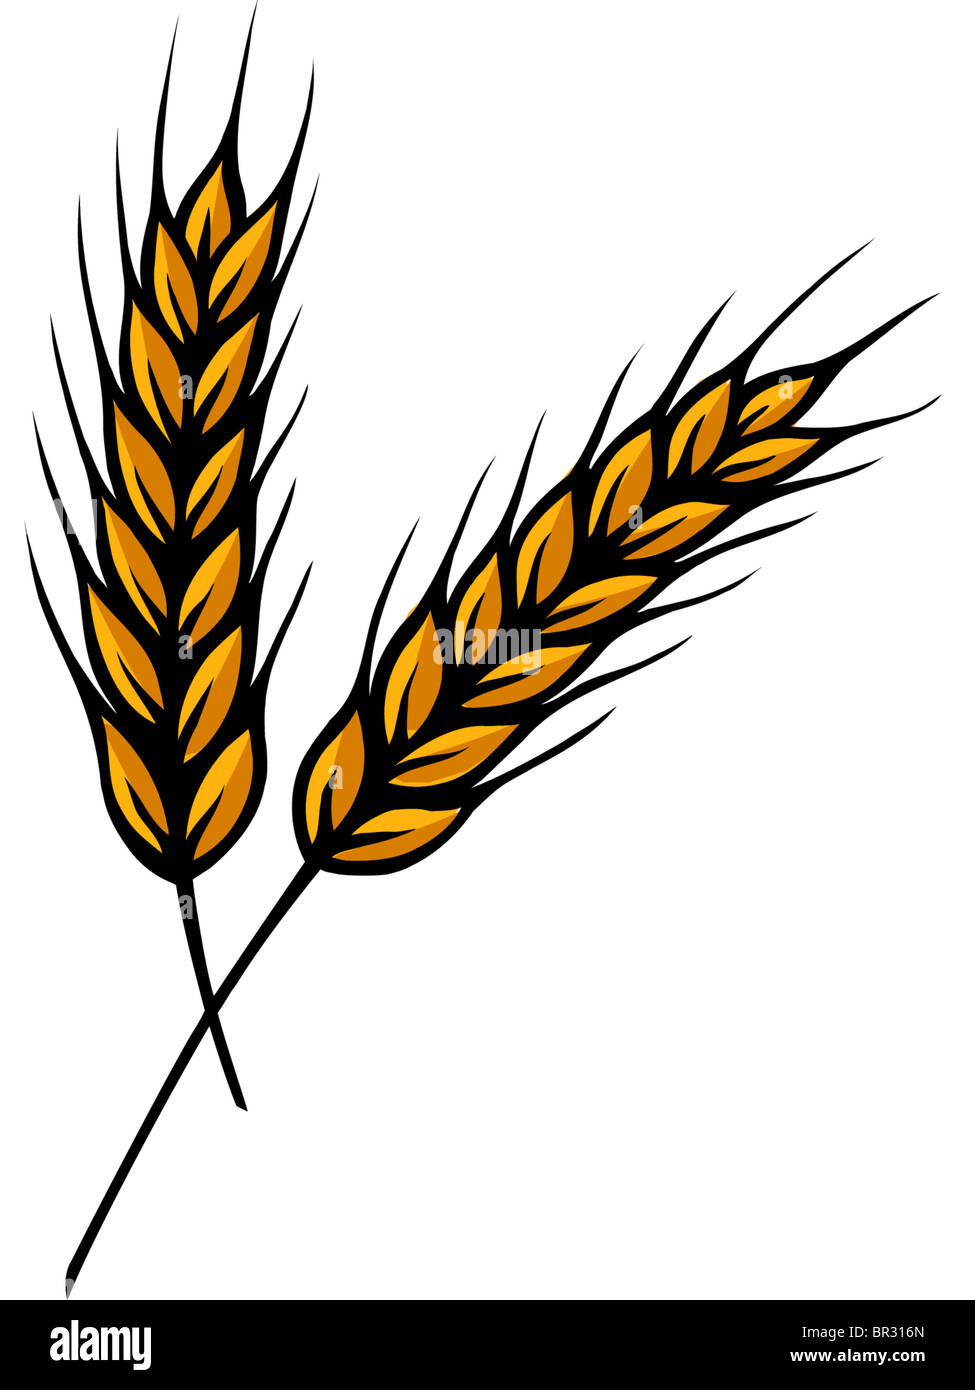 A Drawing Of Two Stalks Of Wheat Stock Photo 31414285 Alamy